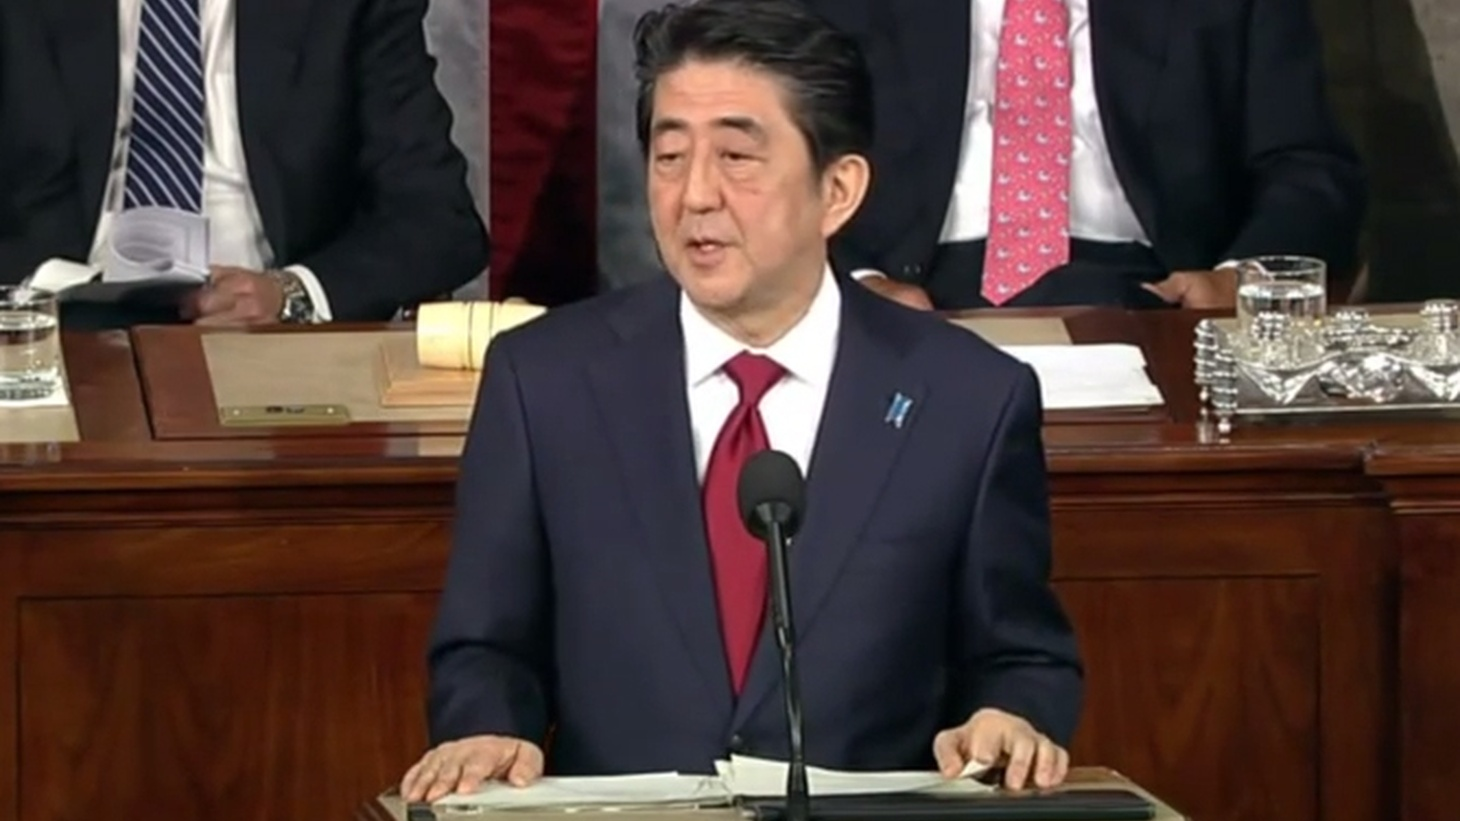 As the first Japanese Prime Minister to address a joint meeting of Congress today, Shinzo Abe offered condolences for Americans killed in World War II—but not for wartime atrocities in Korea, China and elsewhere. He was applauded in Washington, but he'll get a mixed reception when he comes to California tomorrow. Americans of Asian descent are already protesting.